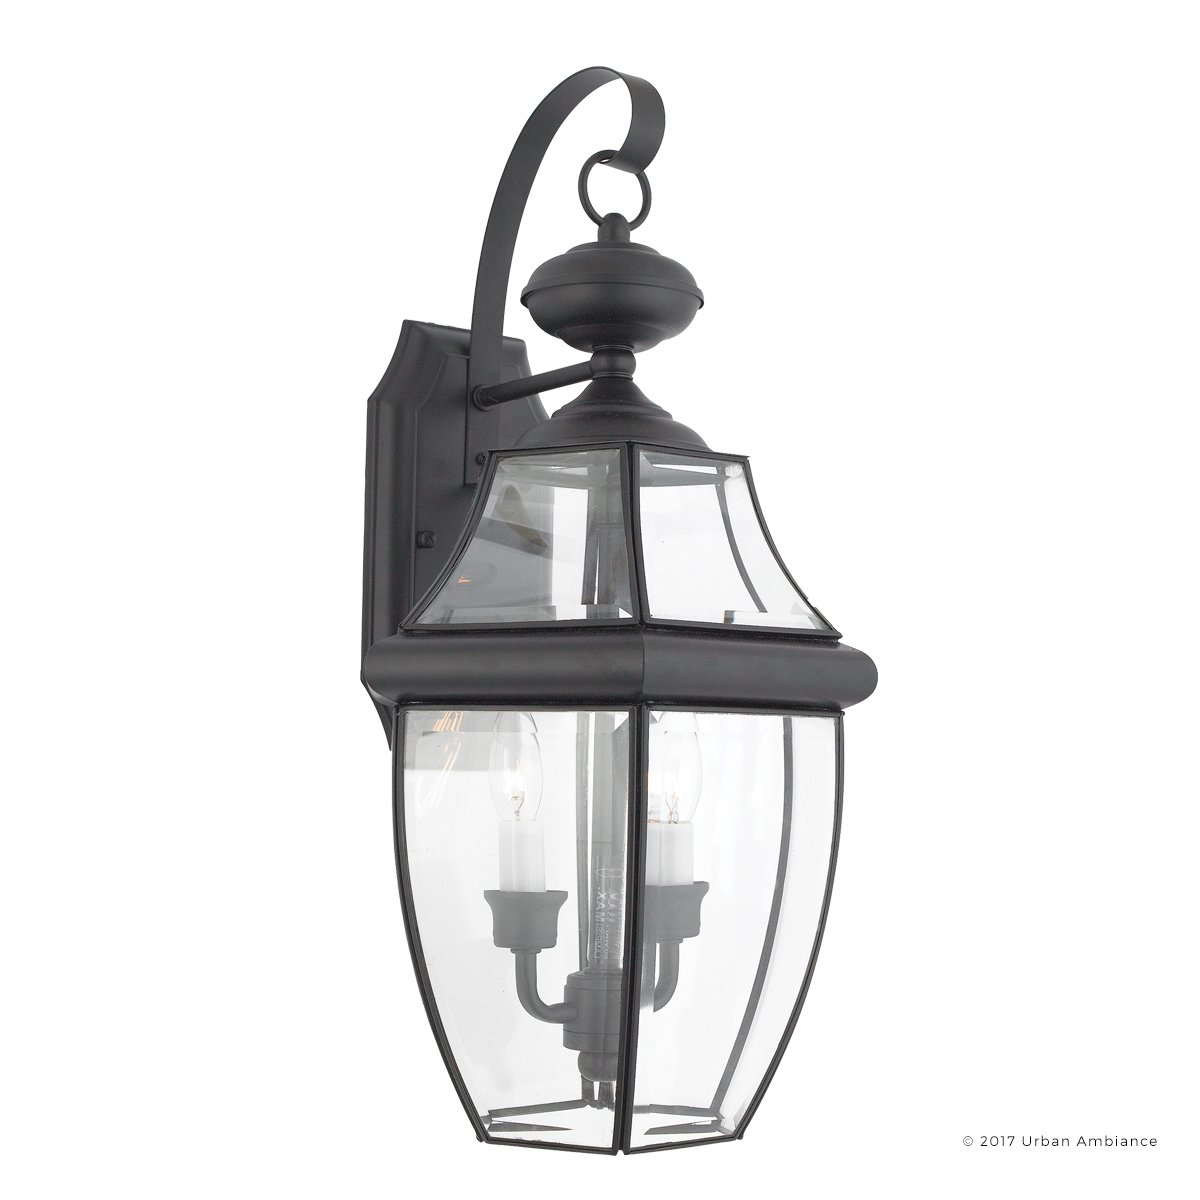 Luxury Colonial Outdoor Wall Light, Large Size: 20''H x 10.5''W, with Tudor Style Elements, Versatile Design, High-End Black Silk Finish and Beveled Glass, UQL1144 by Urban Ambiance